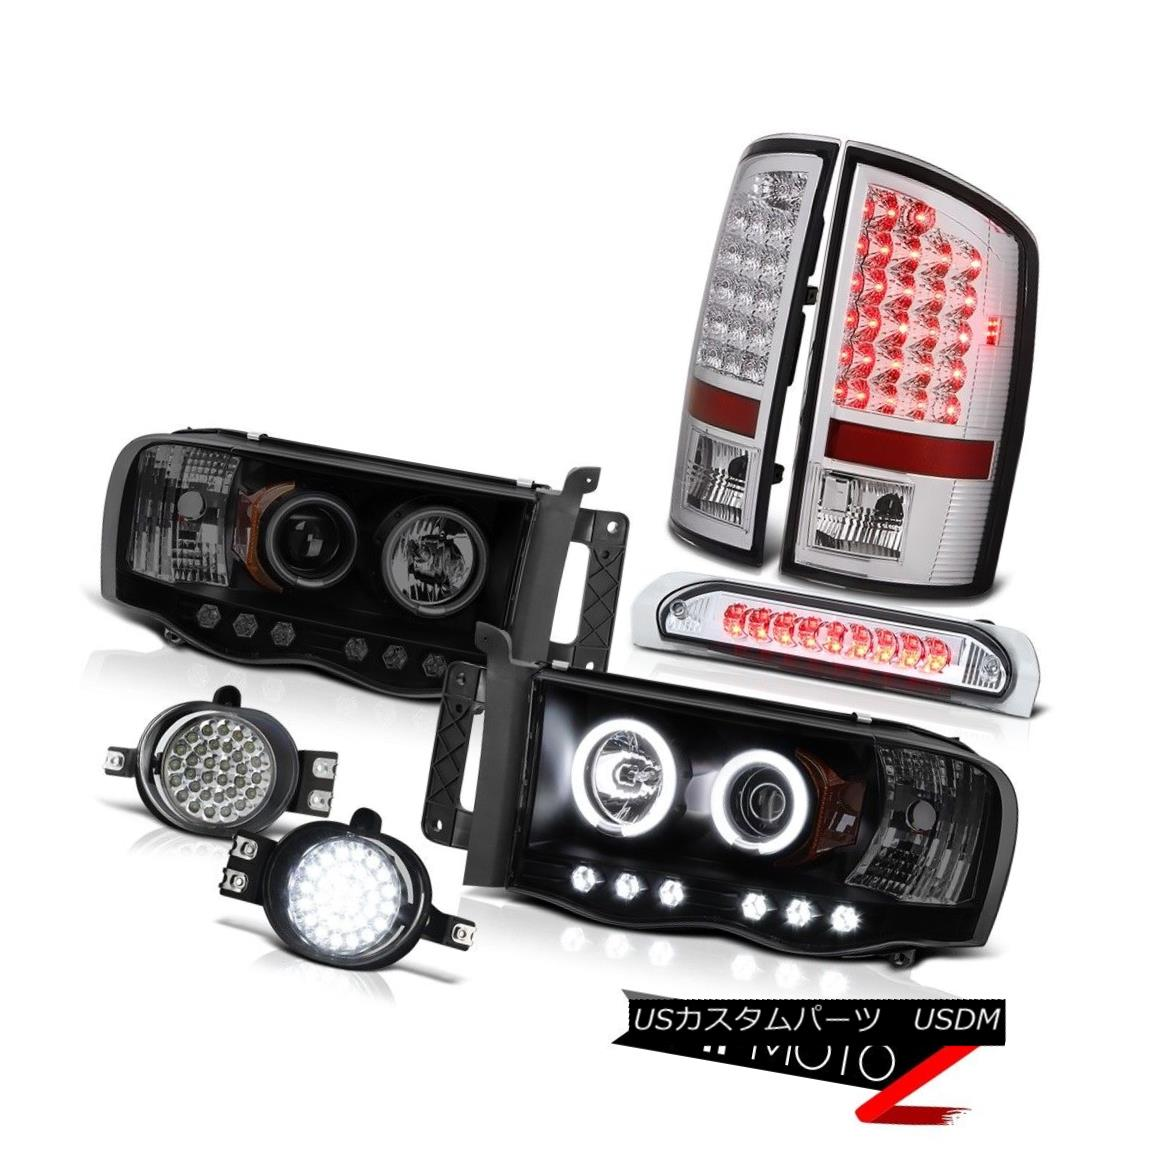 テールライト 02-05 Ram 1500 Laramie CCFL Halo Headlights LED Tail Lights Fog 3rd Brake Lights 02-05 Ram 1500 Laramie CCFL HaloヘッドライトLEDテールライトフォグ3rdブレーキライト